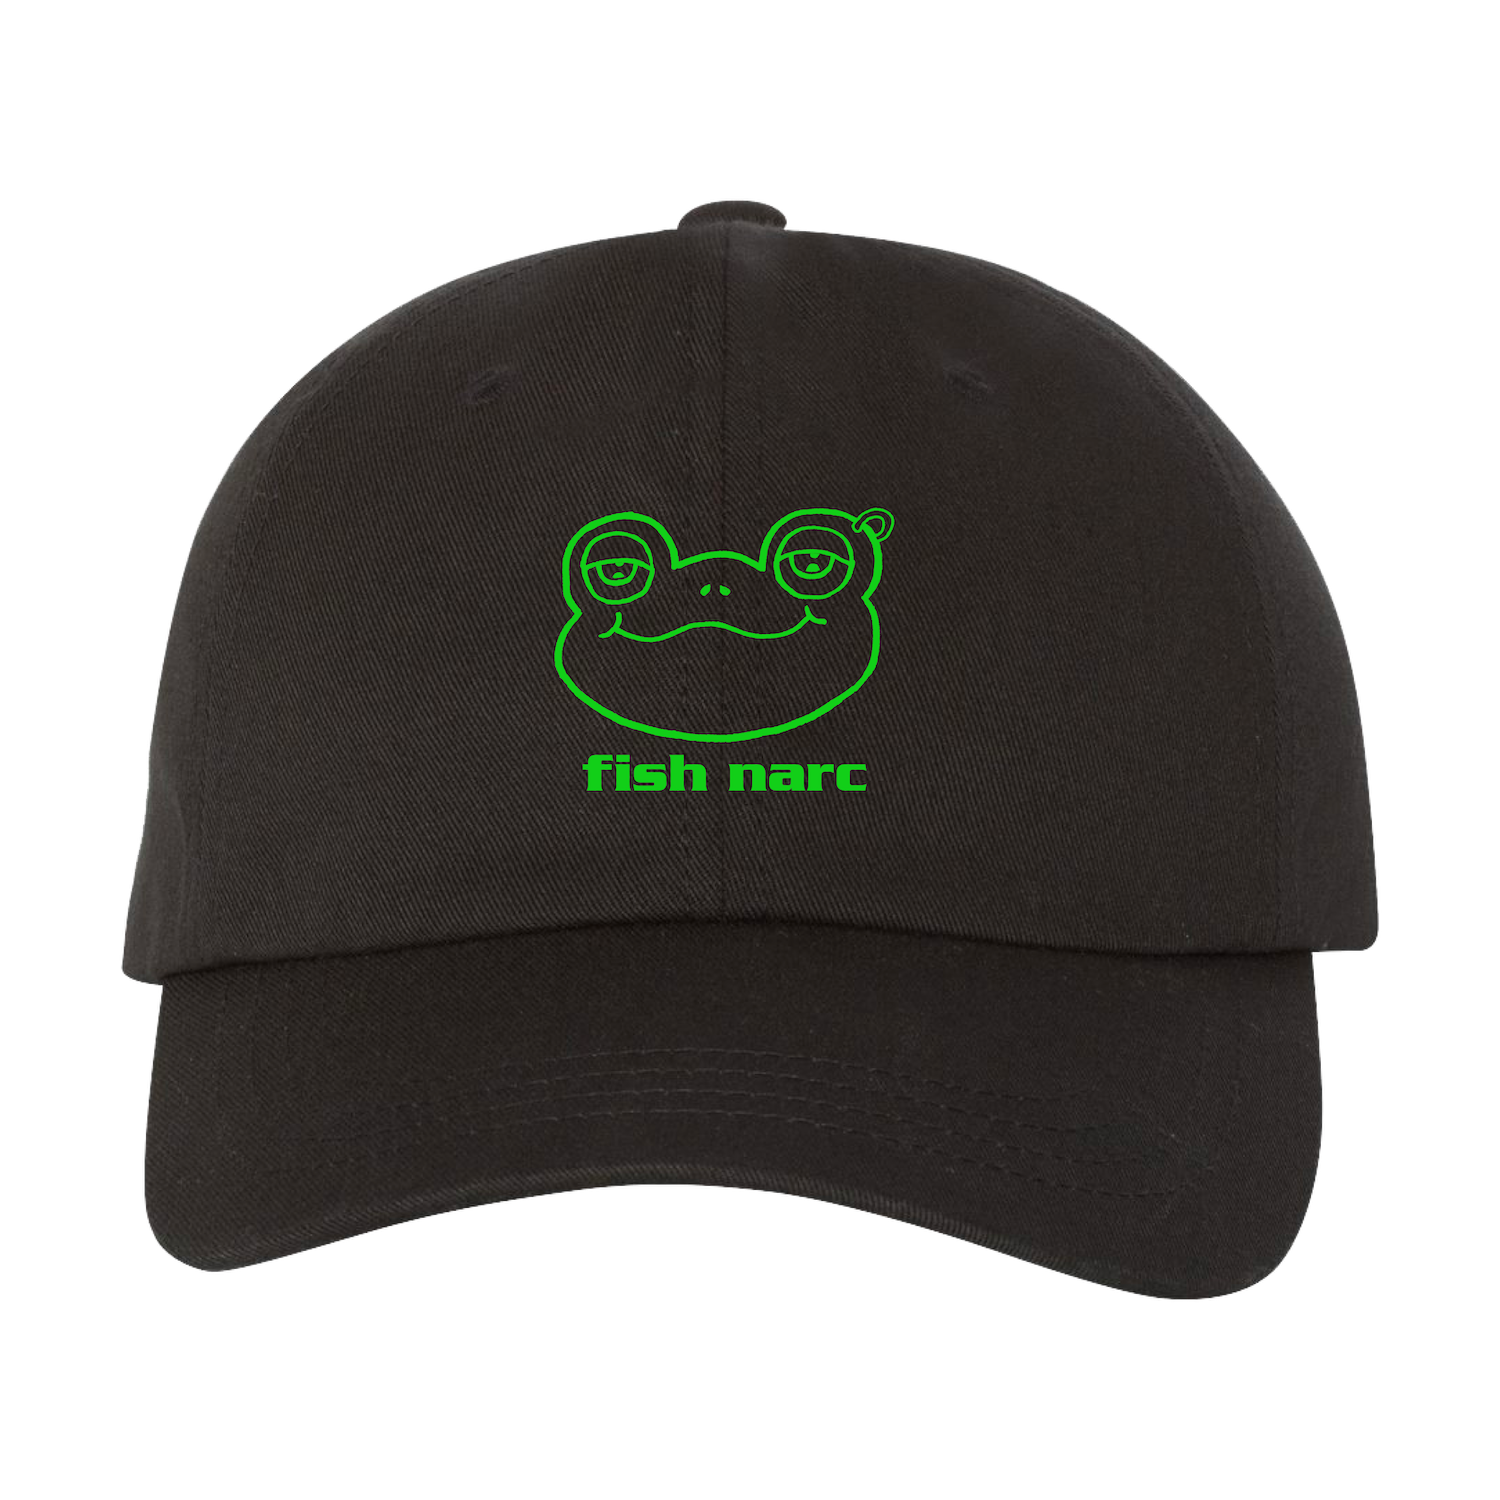 FISH NARC - Frogsong Hat